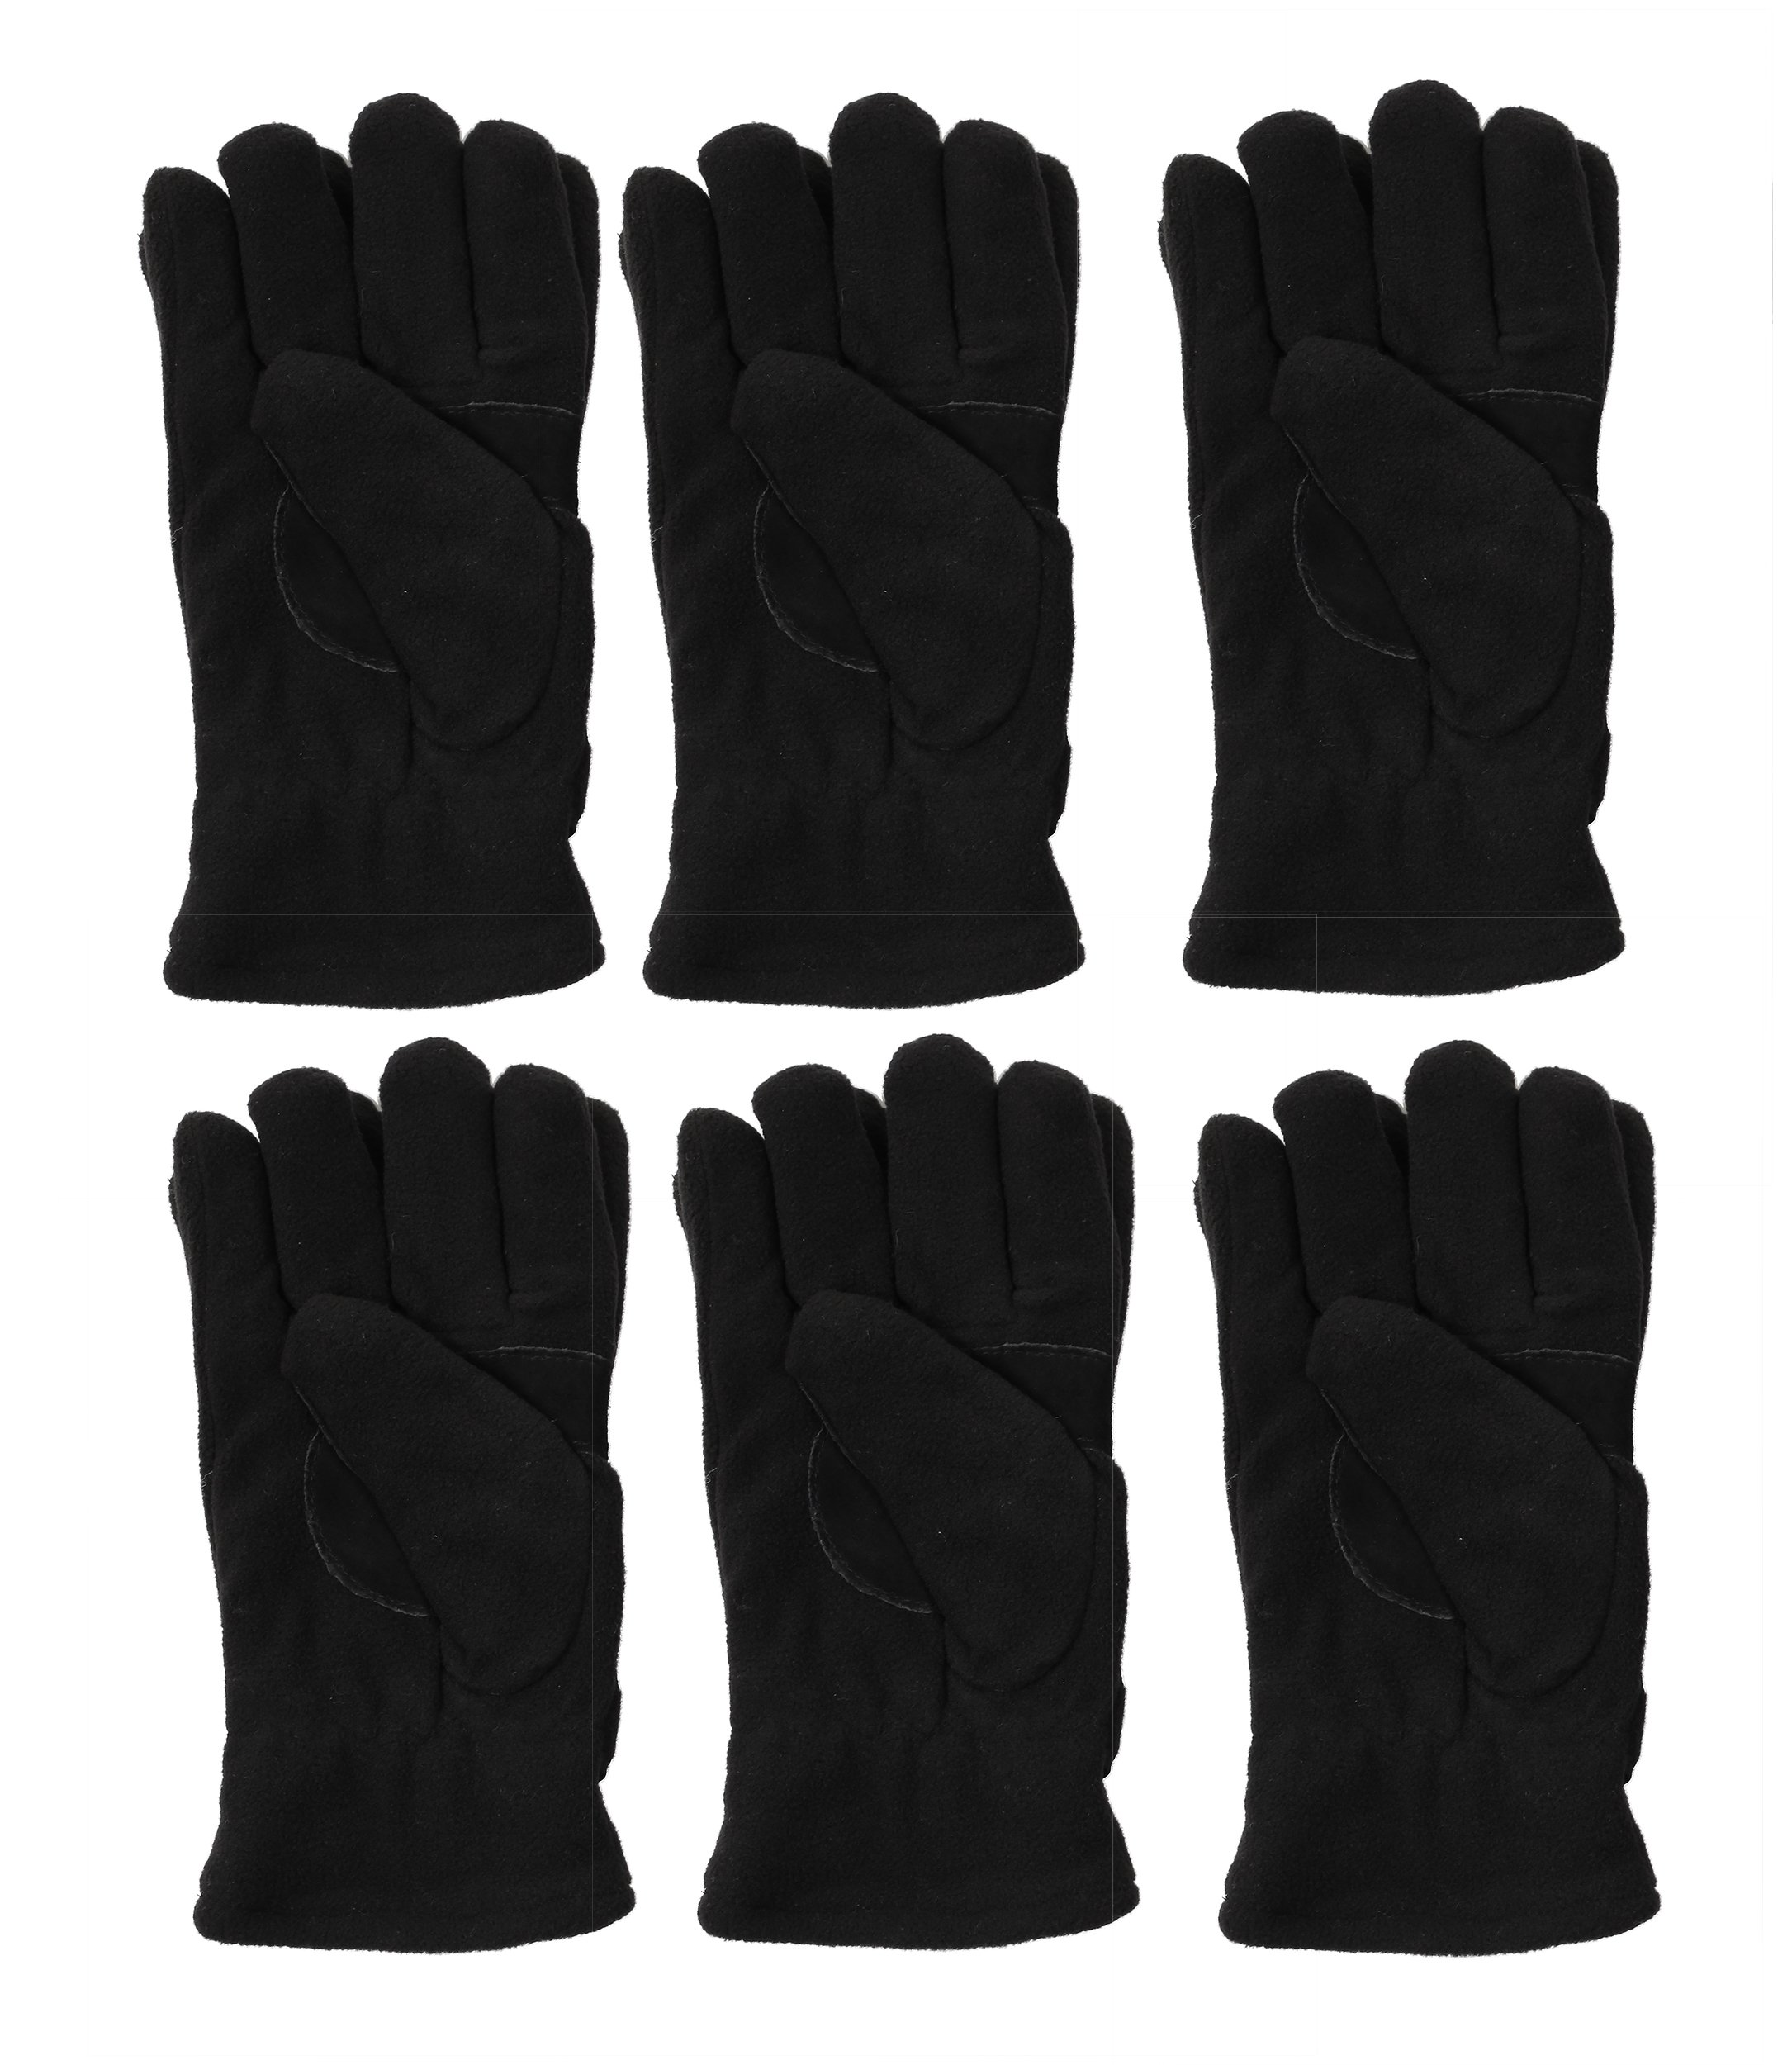 Fleece Glove Insulated with ThermalSport, 6 Pack, Women's Size, Adjustable Velcro Strap (Black)